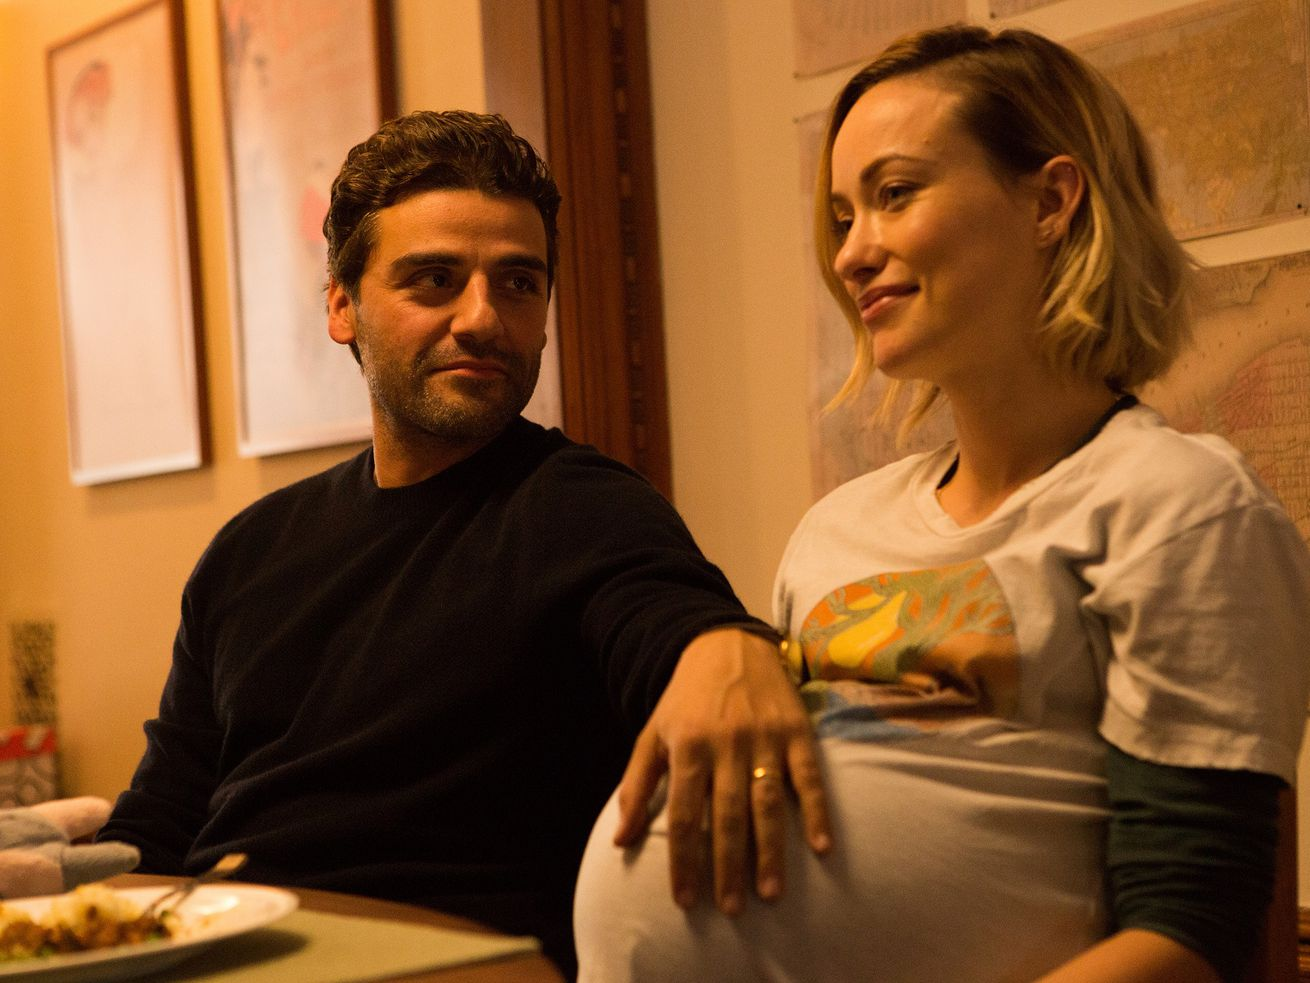 This movie stars Oscar Isaac and Olivia Wilde, a fact I don't believe I disclose anywhere in this review, except for right now.